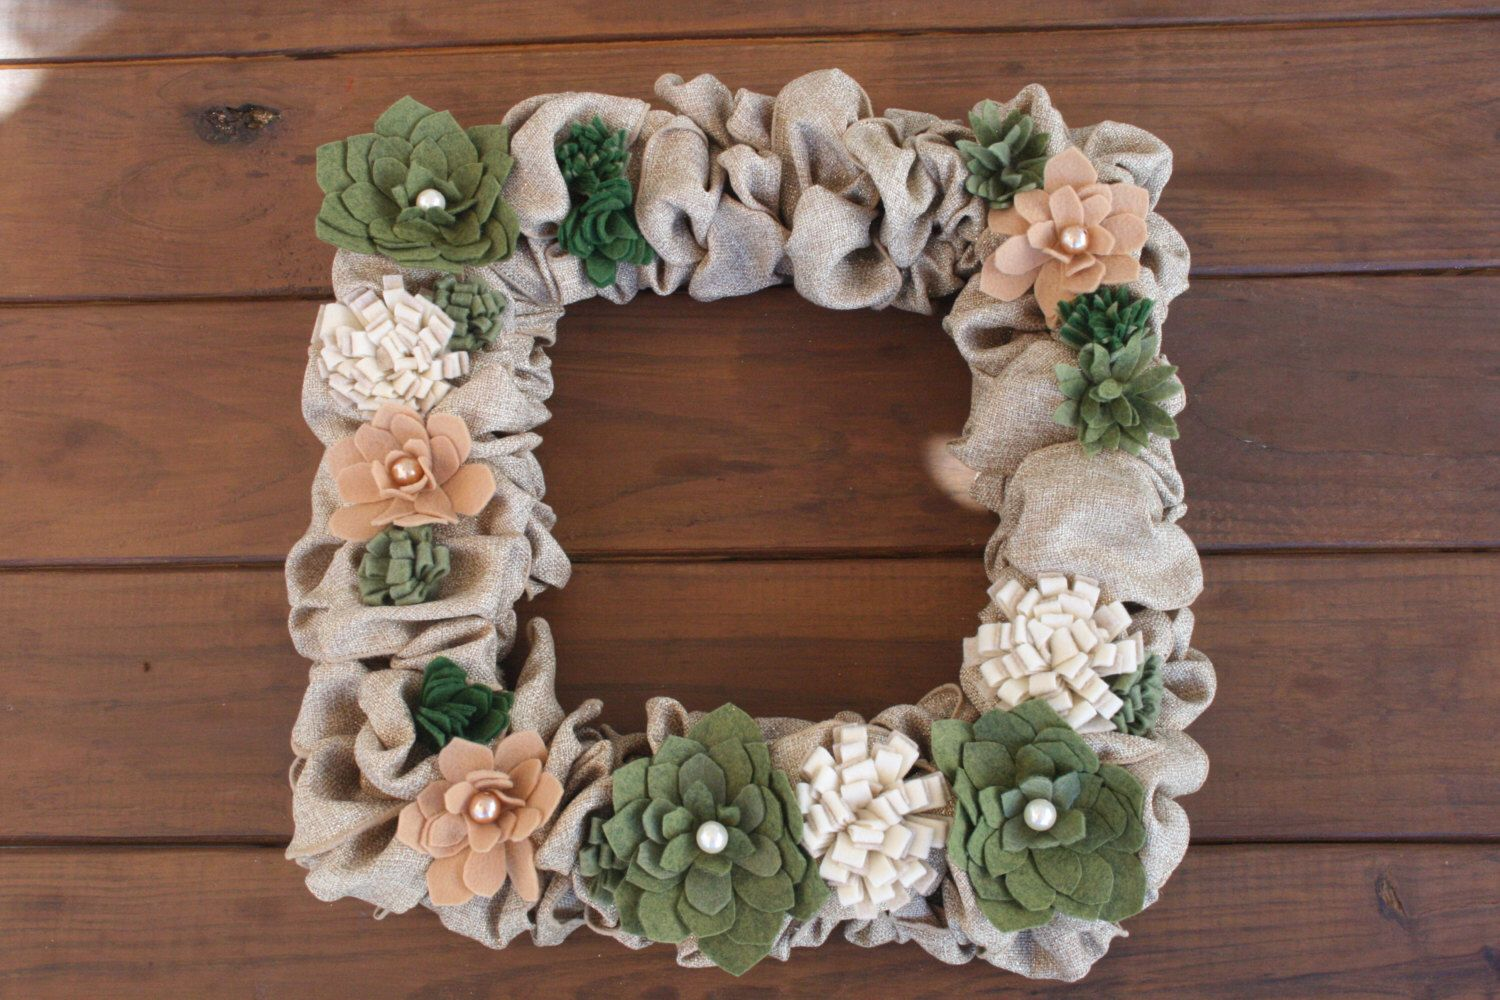 Christmas Wreath Succulent 022 by KKeithDesigns on Etsy https://www.etsy.com/listing/212799153/christmas-wreath-succulent-022